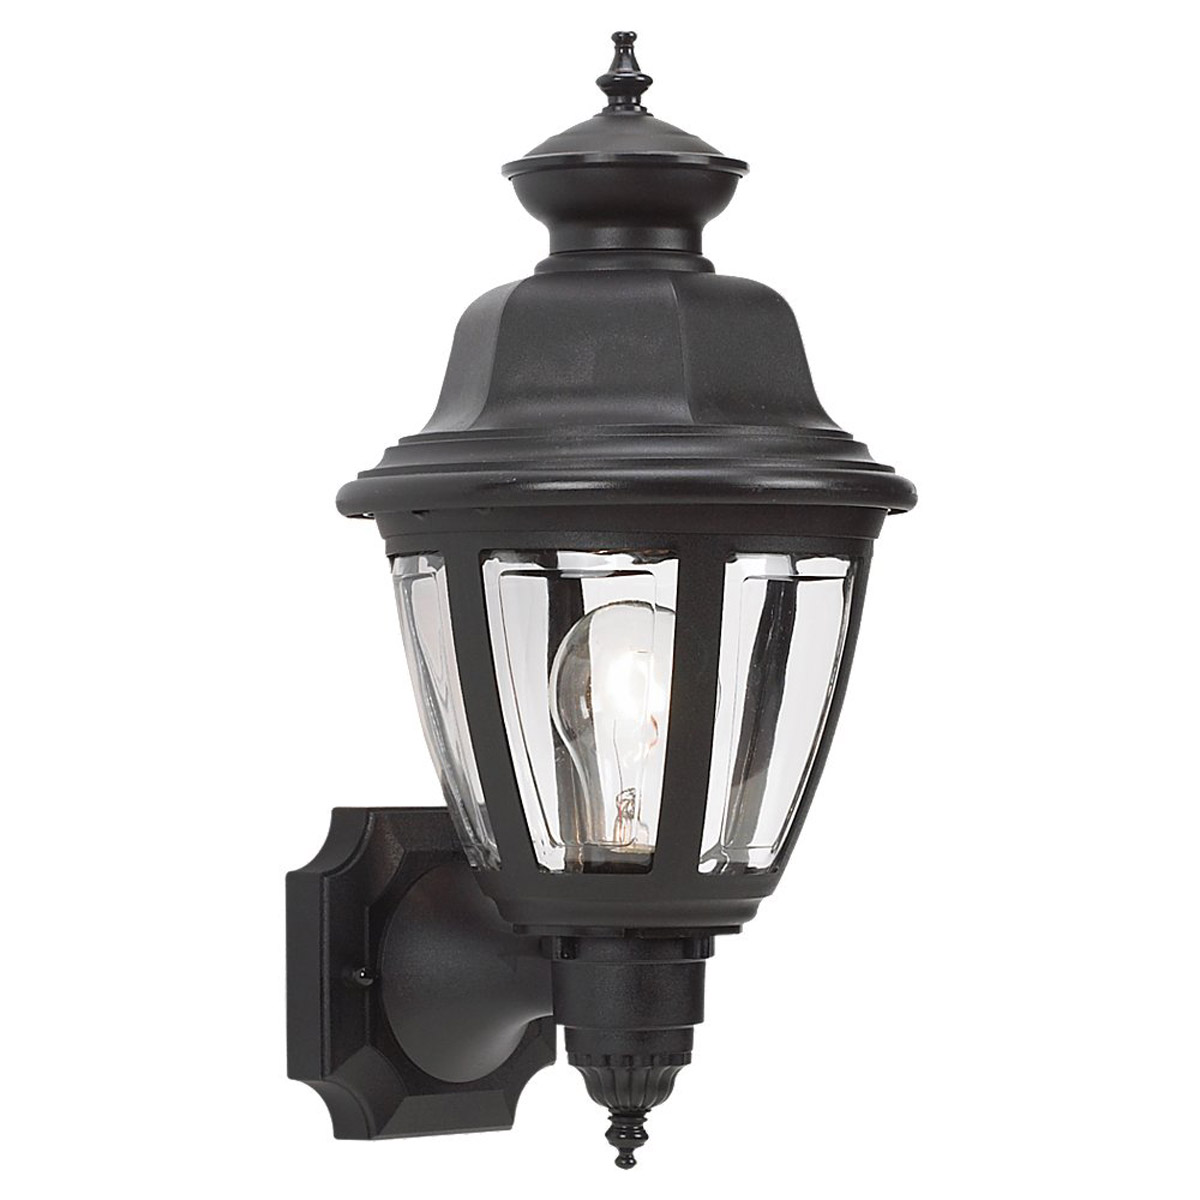 Sea Gull Lighting Belmar 1 Light Outdoor Wall Lantern in Black 88092-12 photo